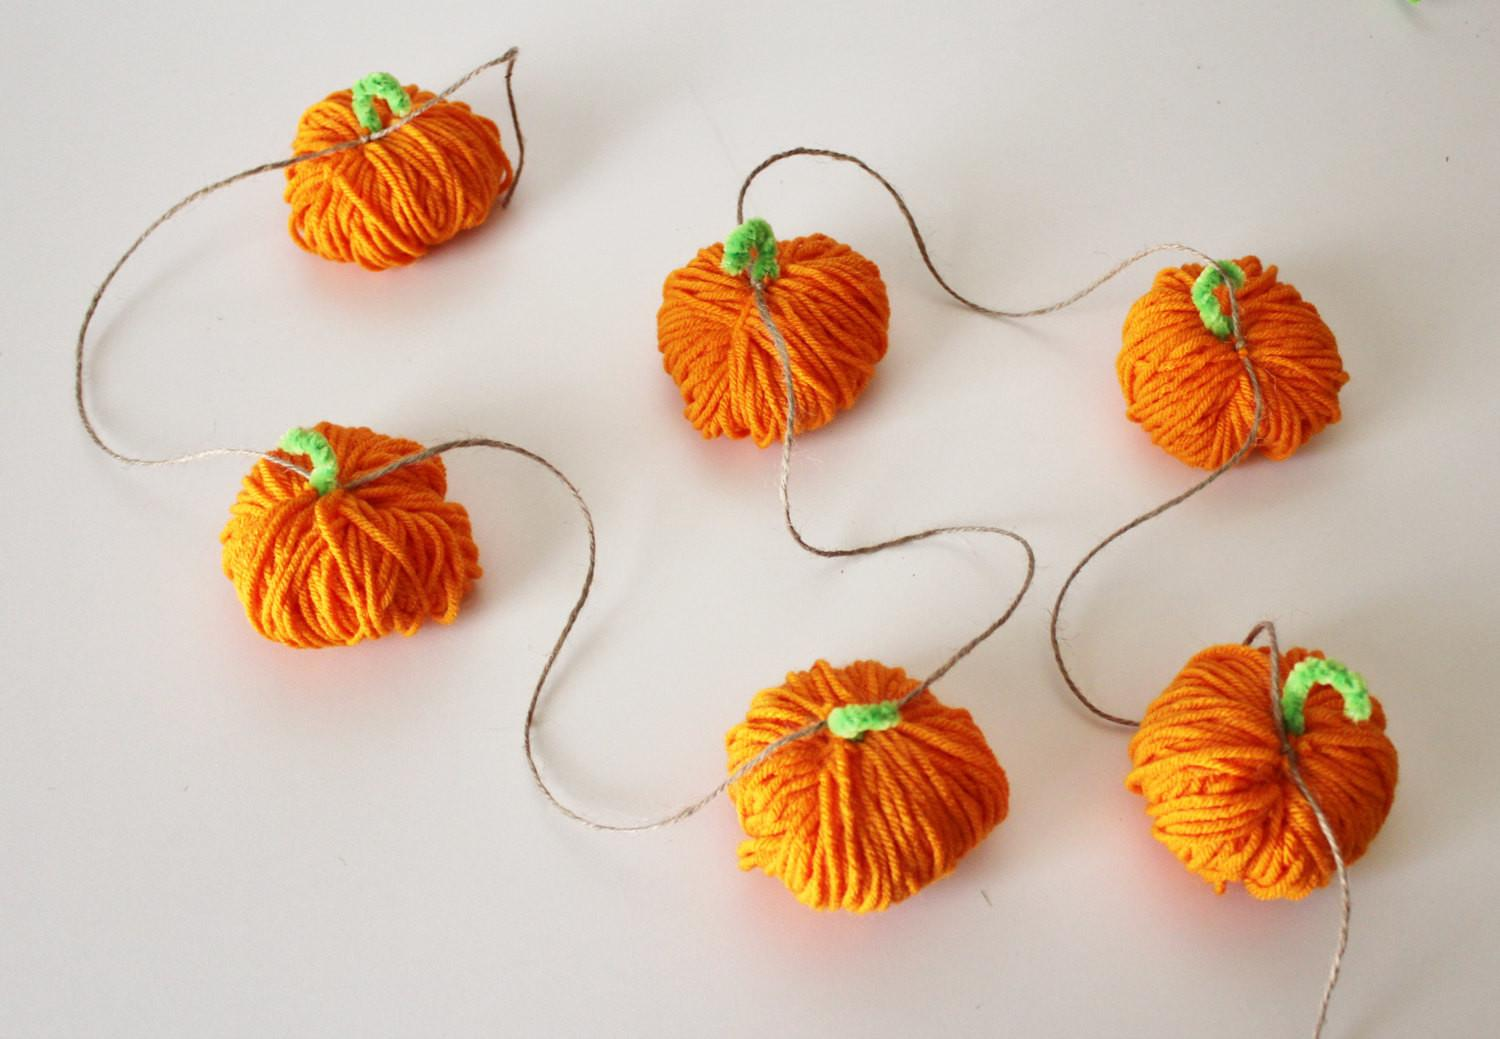 Remarkably Make A Yarn Pumpkin Garland That Will Make You Smile (in  Pictures) - Decoratorist